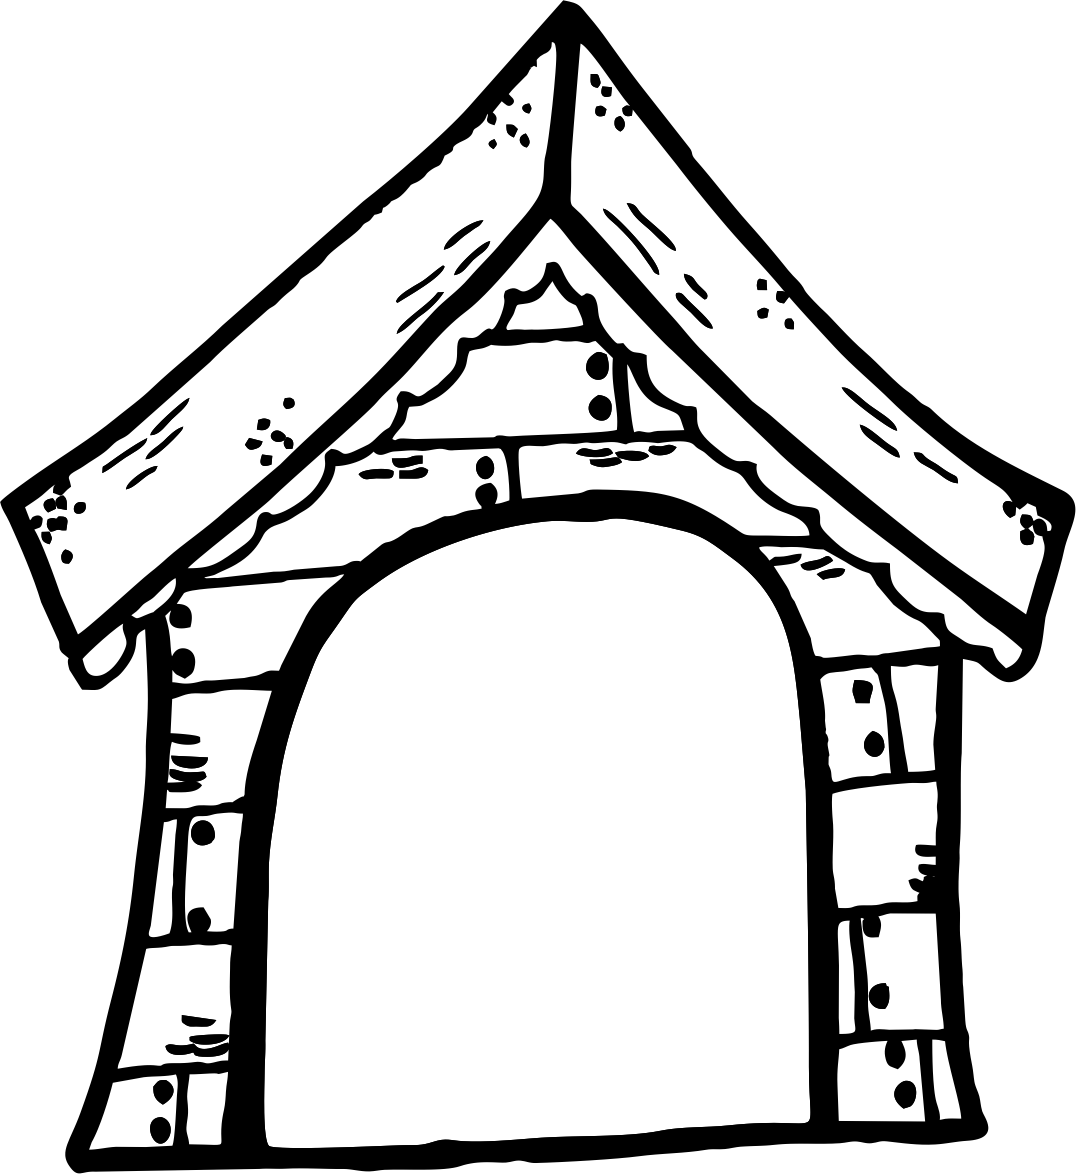 clipart of dog houses - photo #43